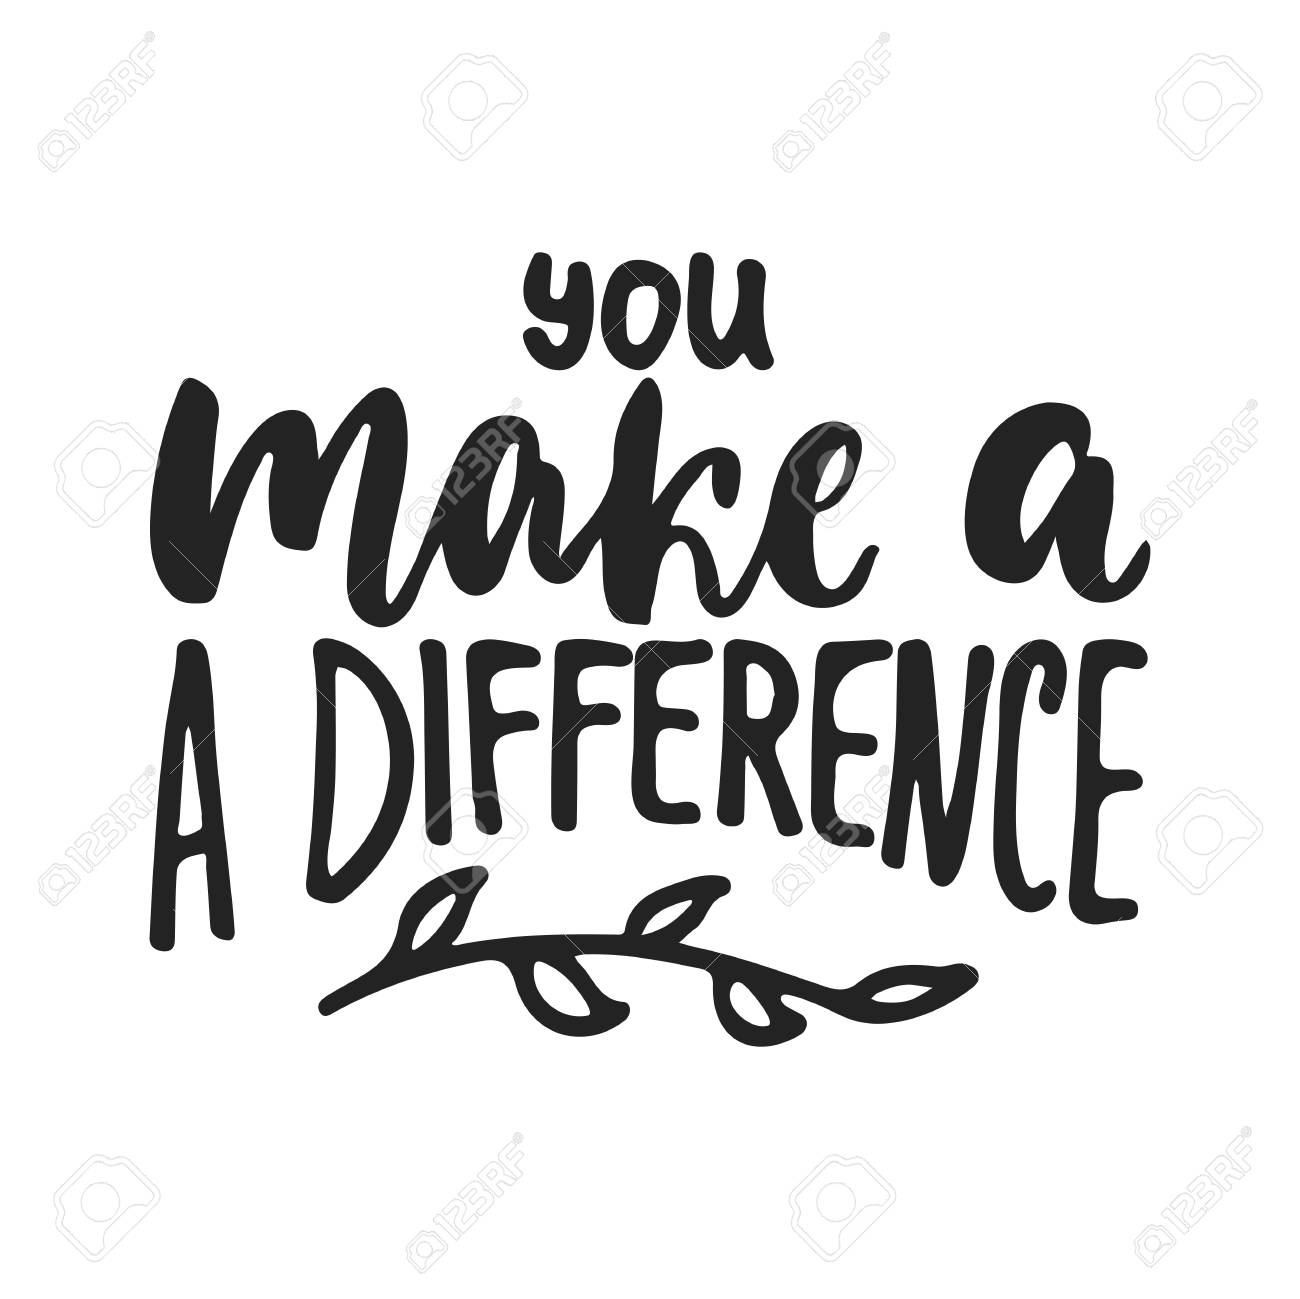 You make a difference.